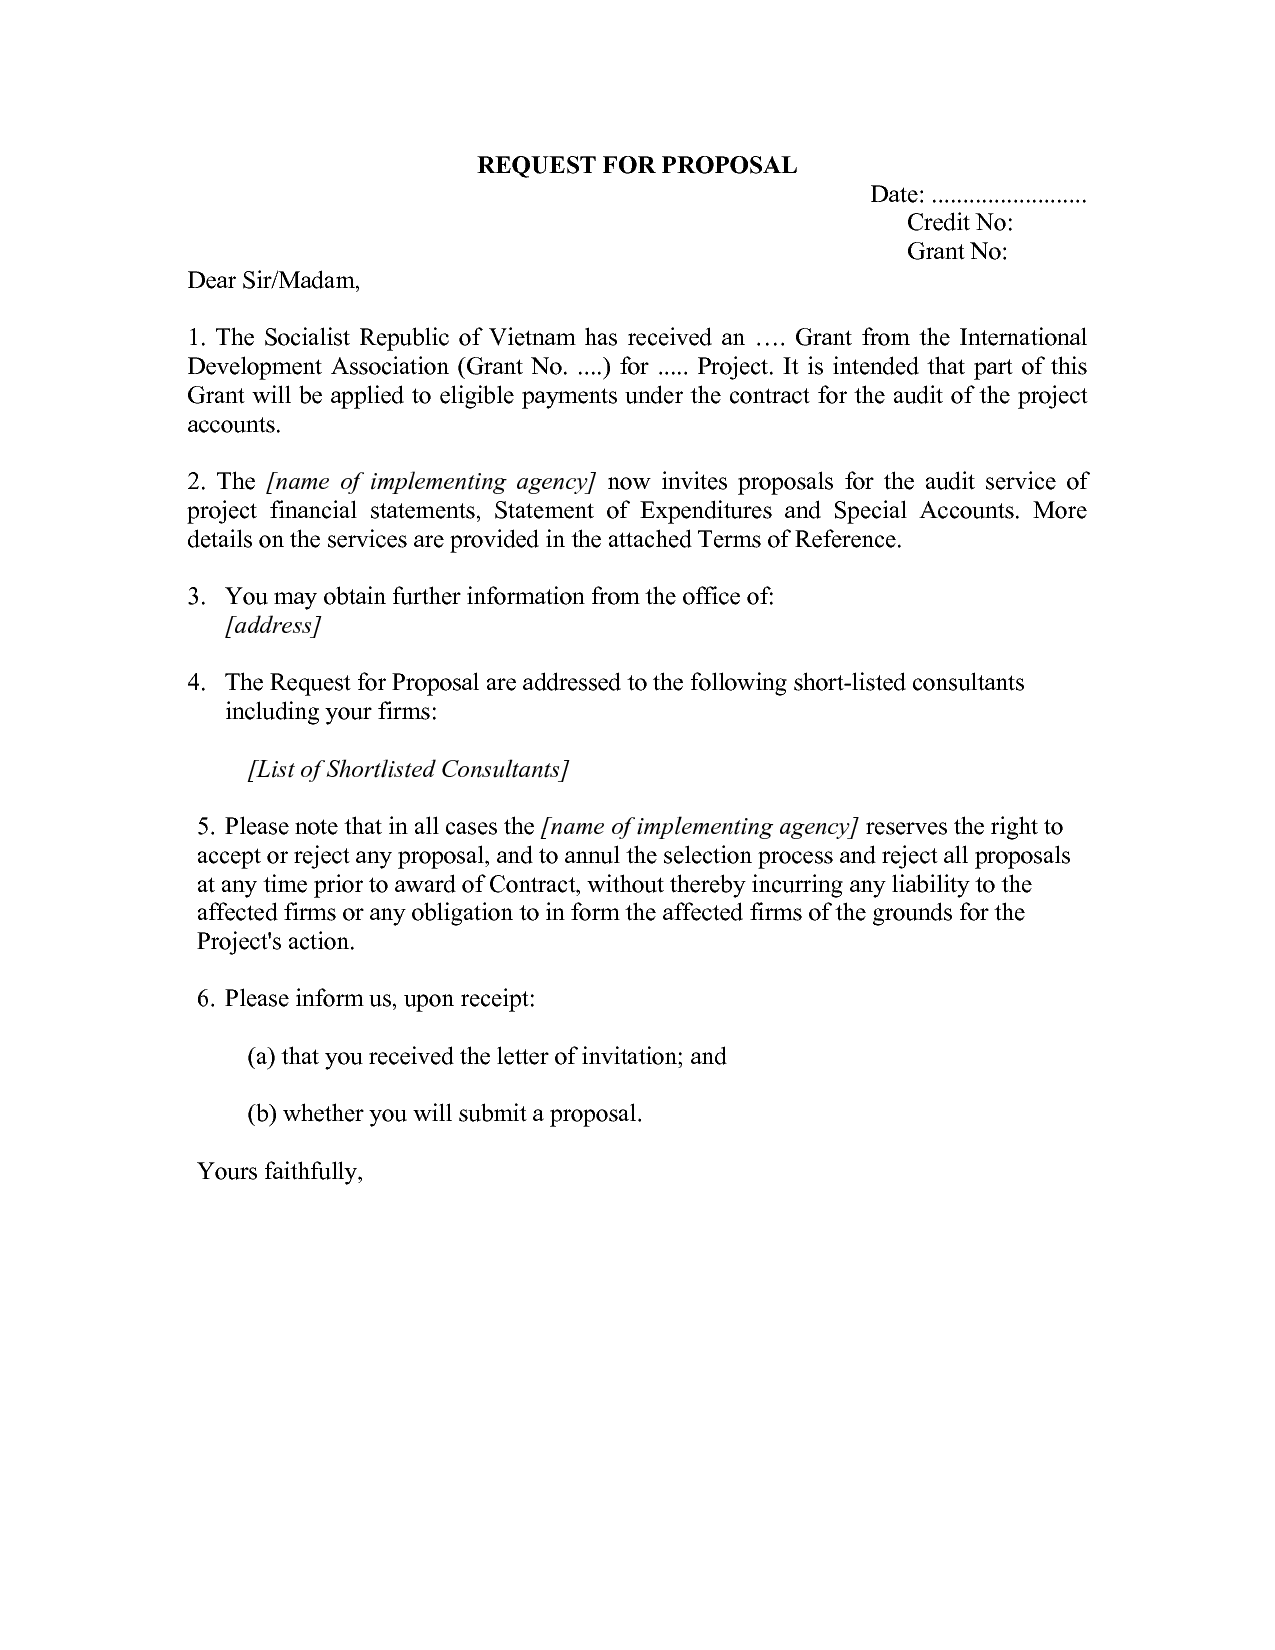 Proposal Letter To a Client   Sample Proposal Letter To a Client